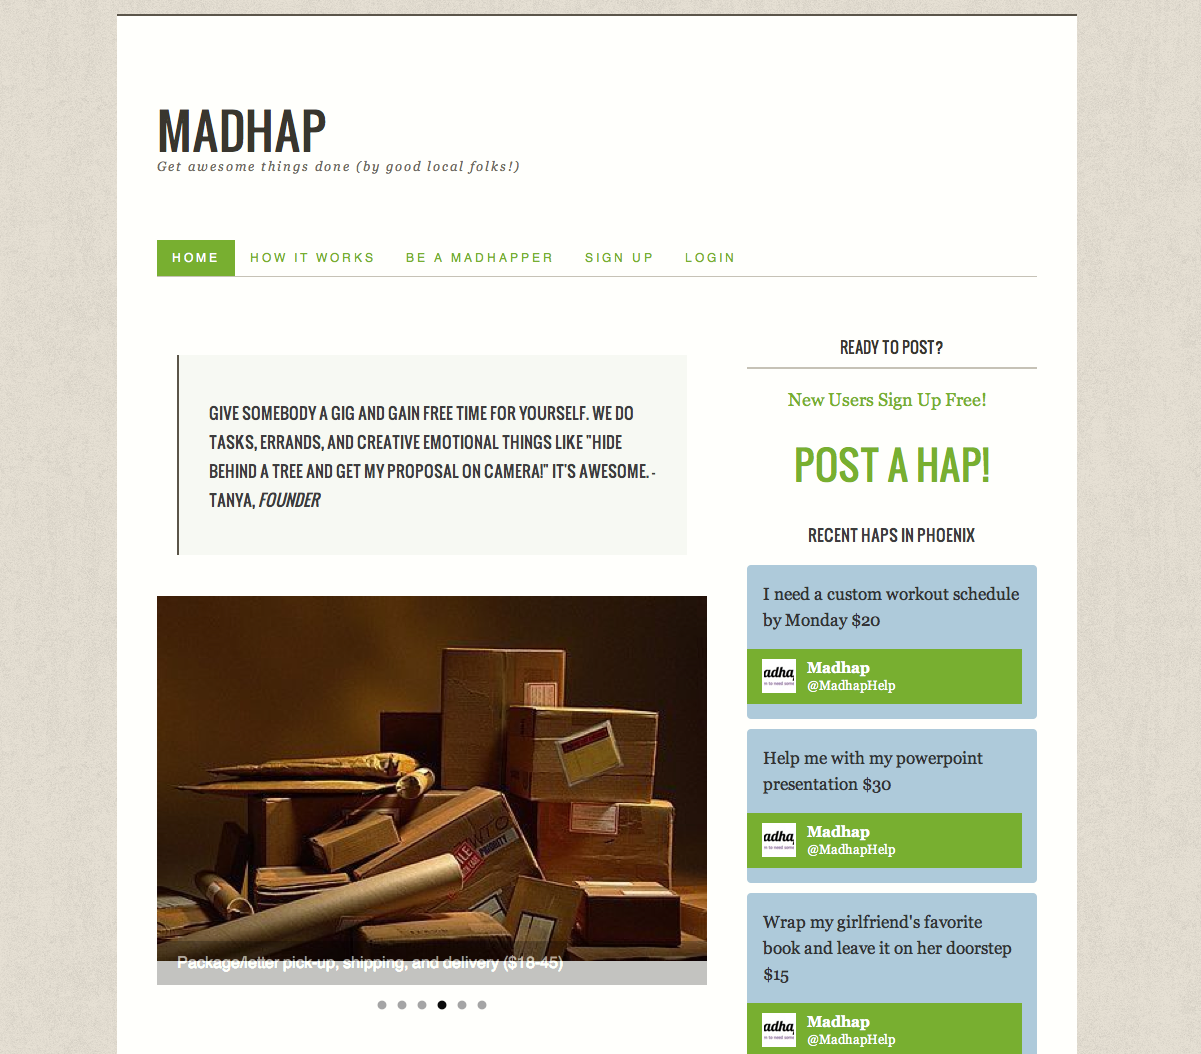 """MADHAP  is a creative task, gig, and errand service based in Phoenix, Arizona. We call them """"Haps"""" and you can post them online at  Madhap.com."""